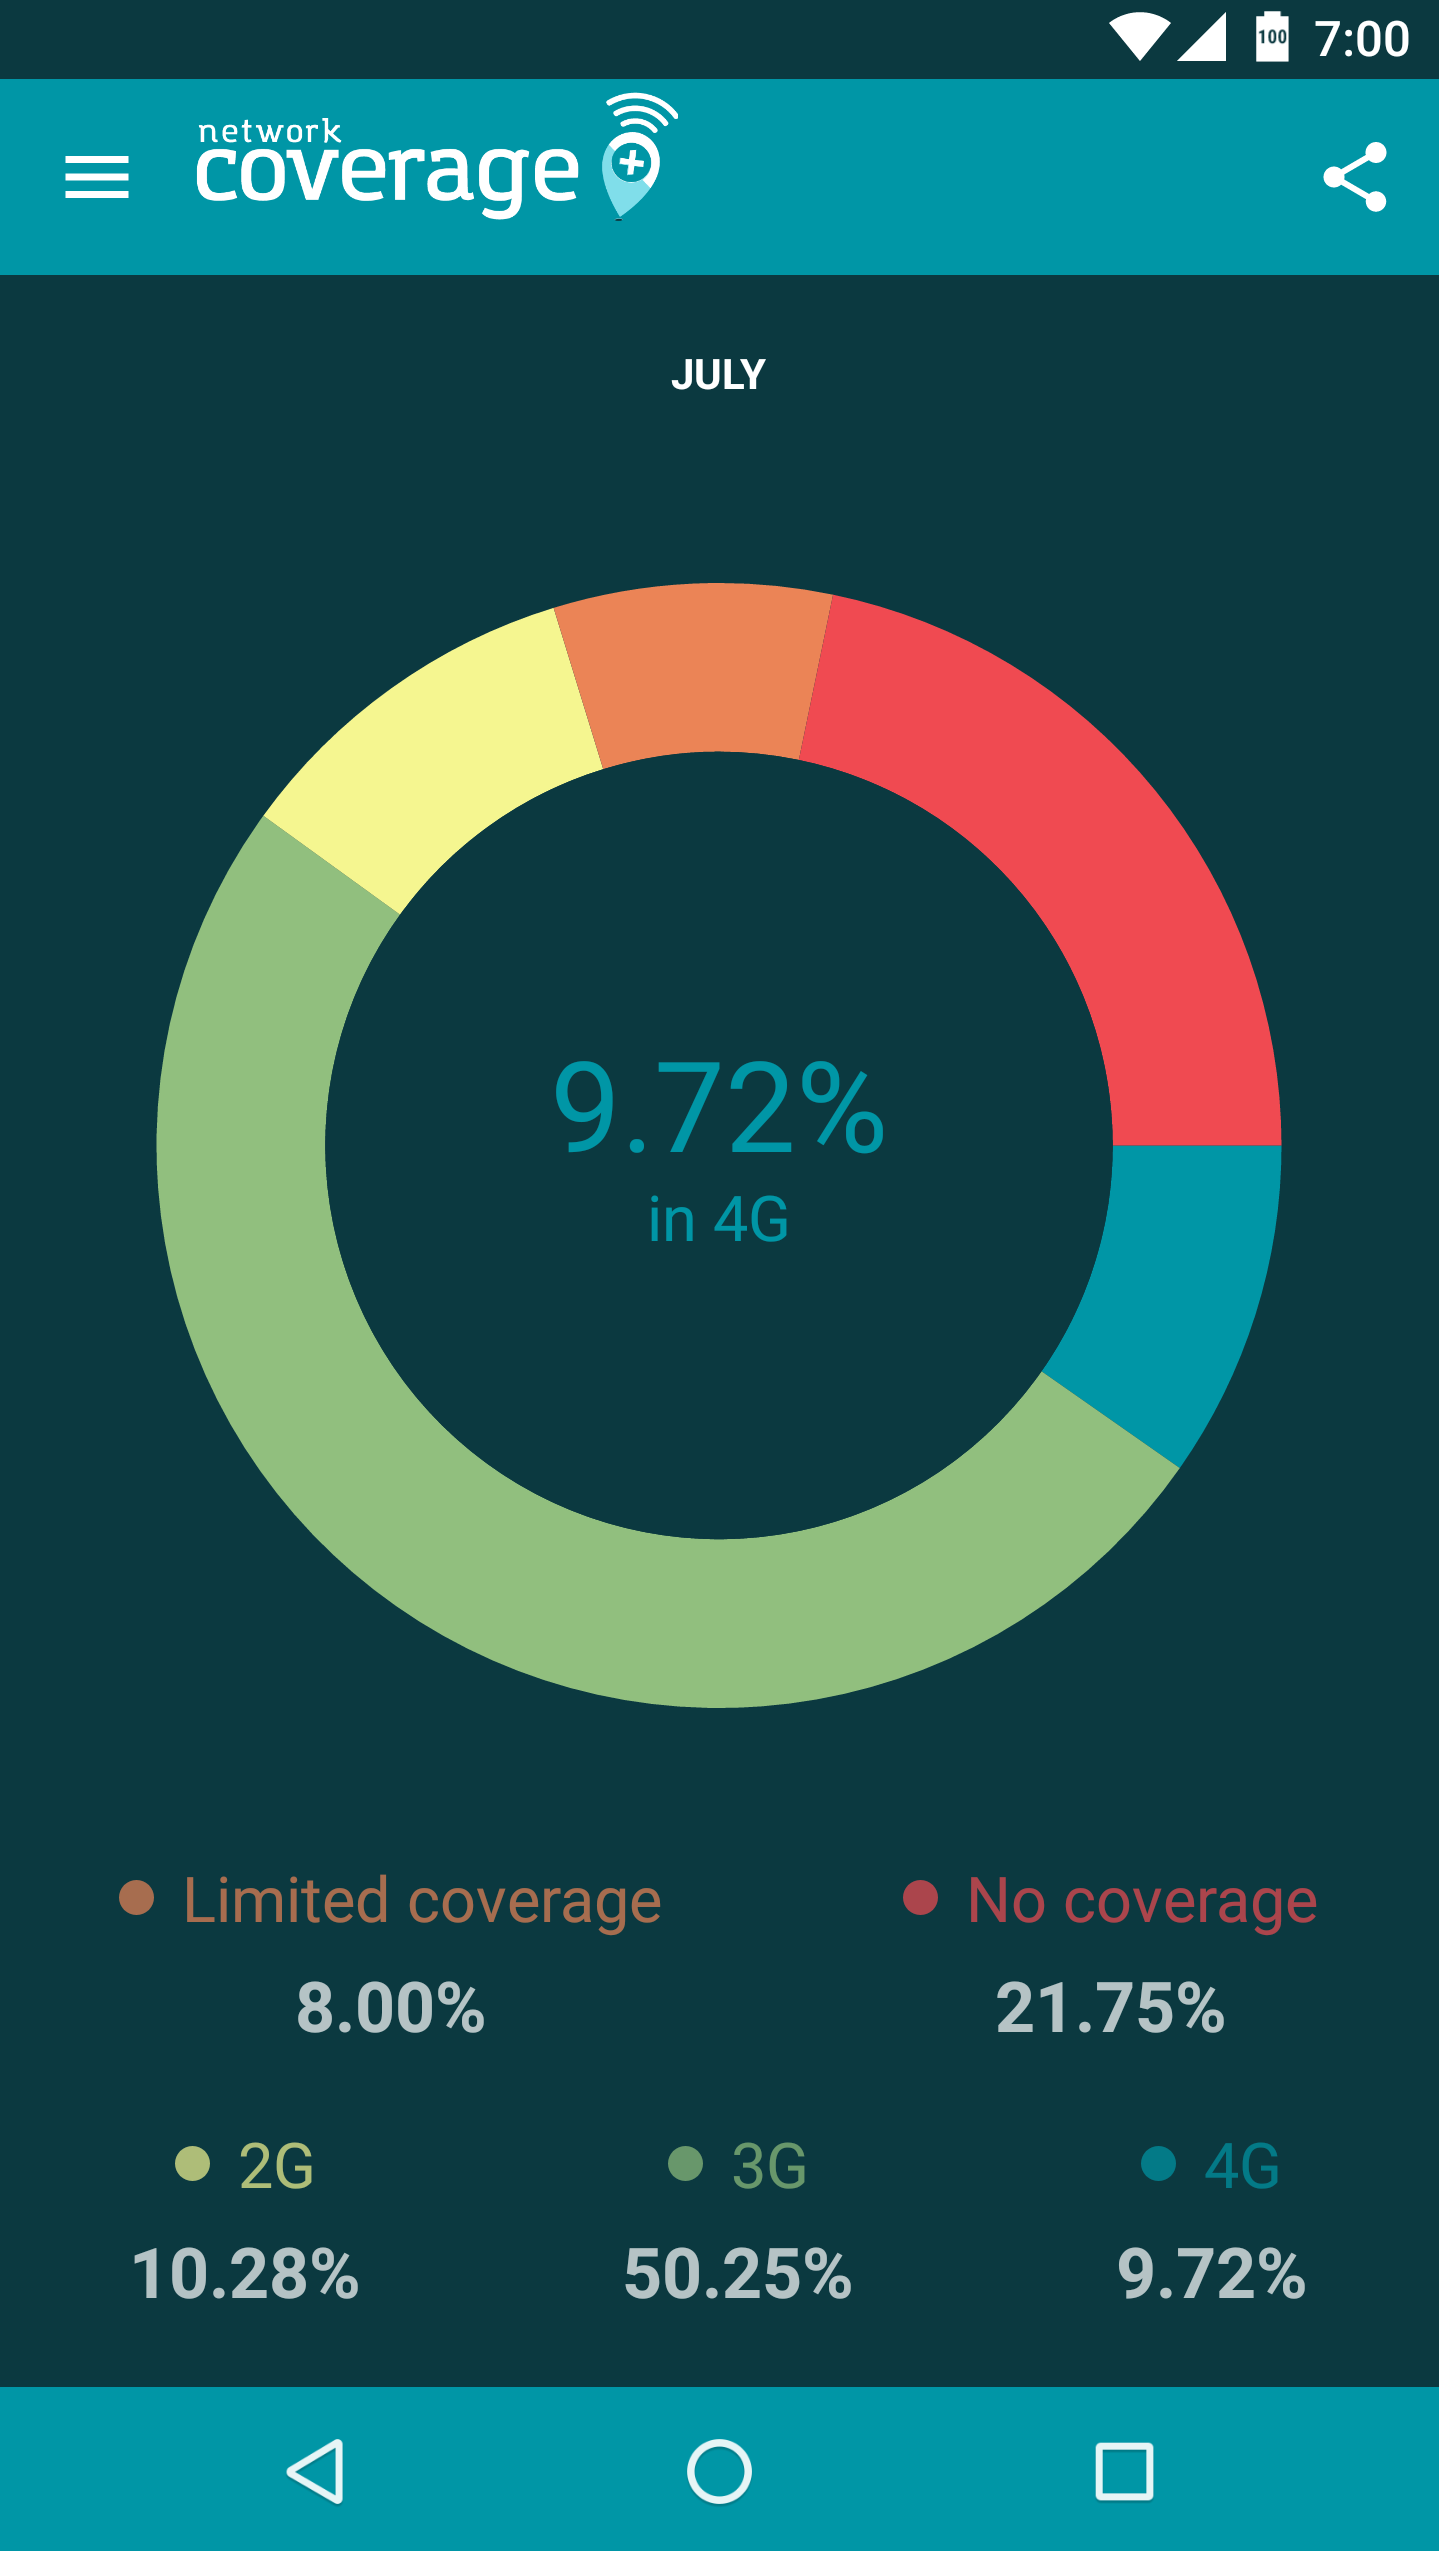 Network coverage+